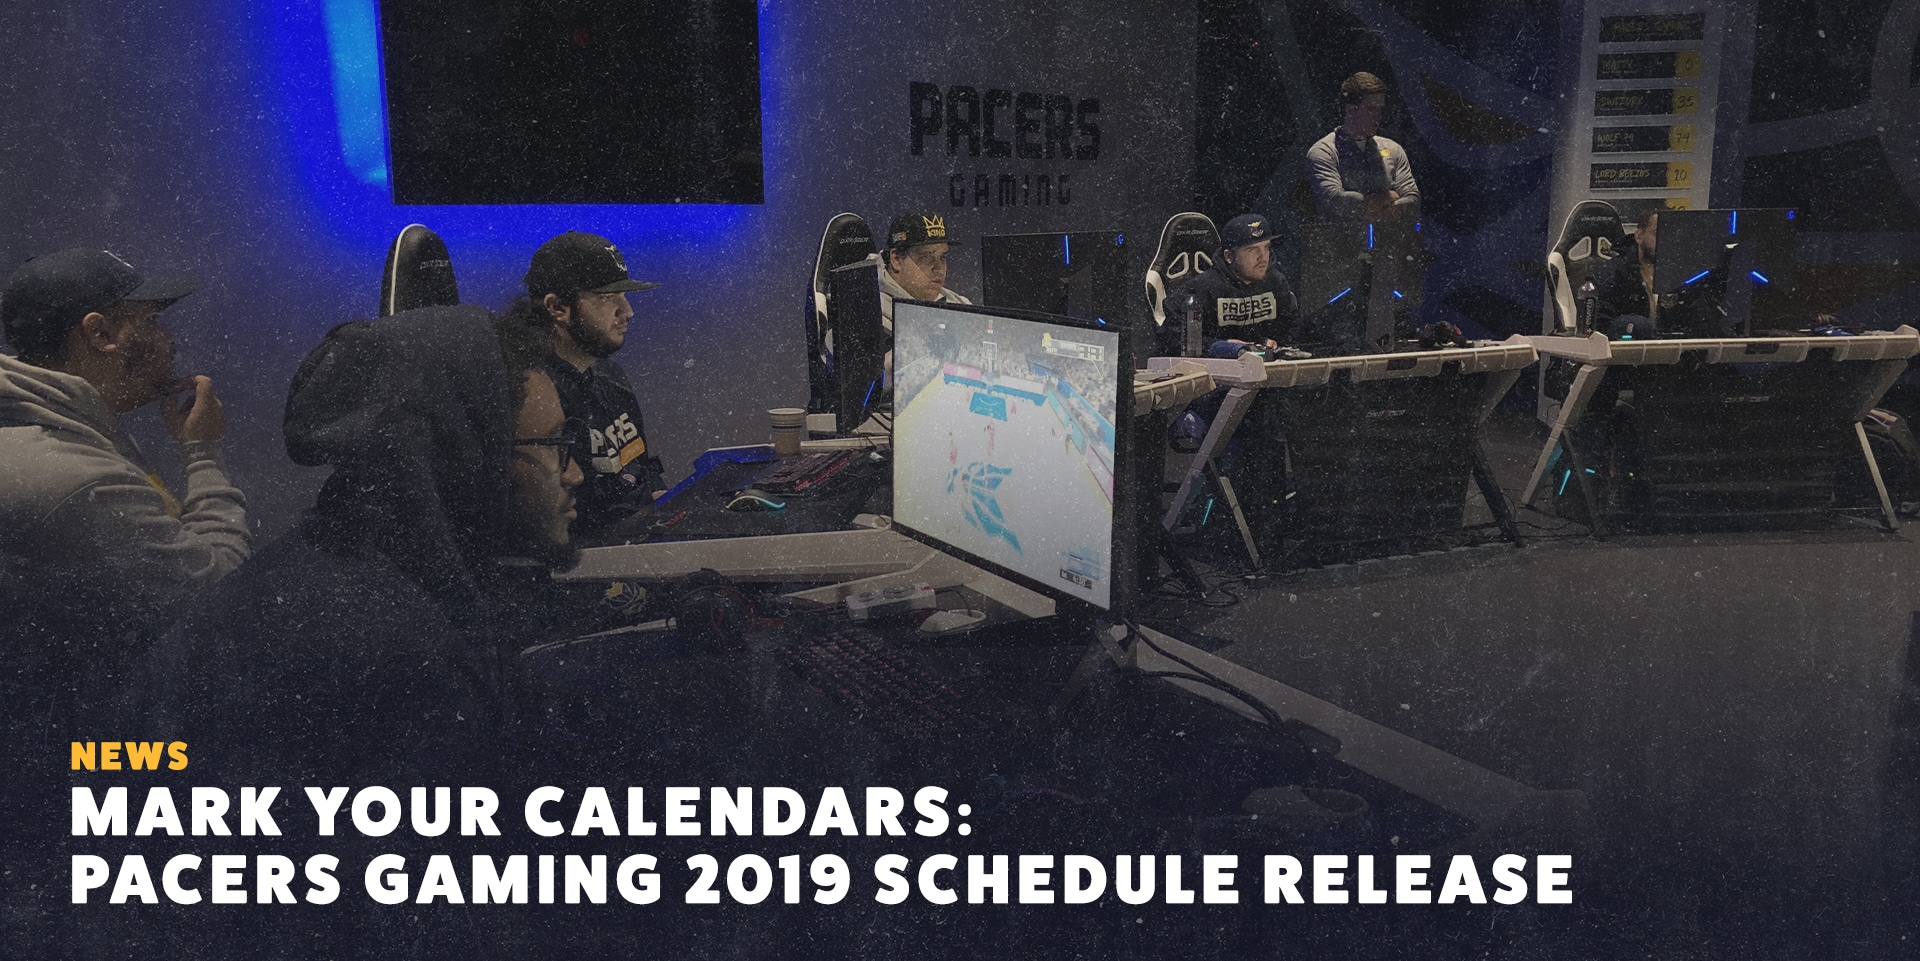 Pacers Gaming Schedule Release